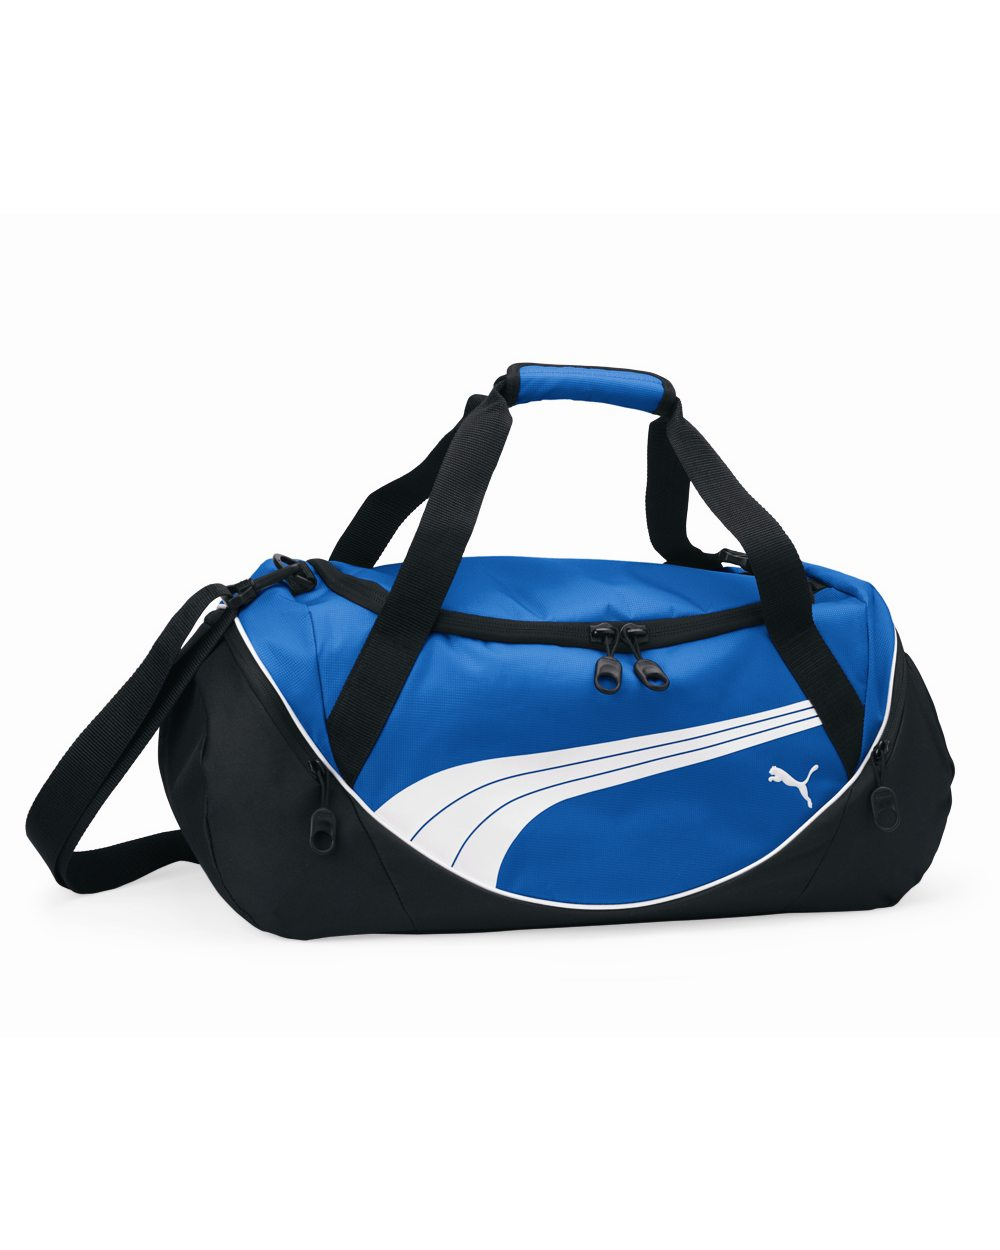 "PUMA 1001 - Teamsport Formation 20"" Duffel"